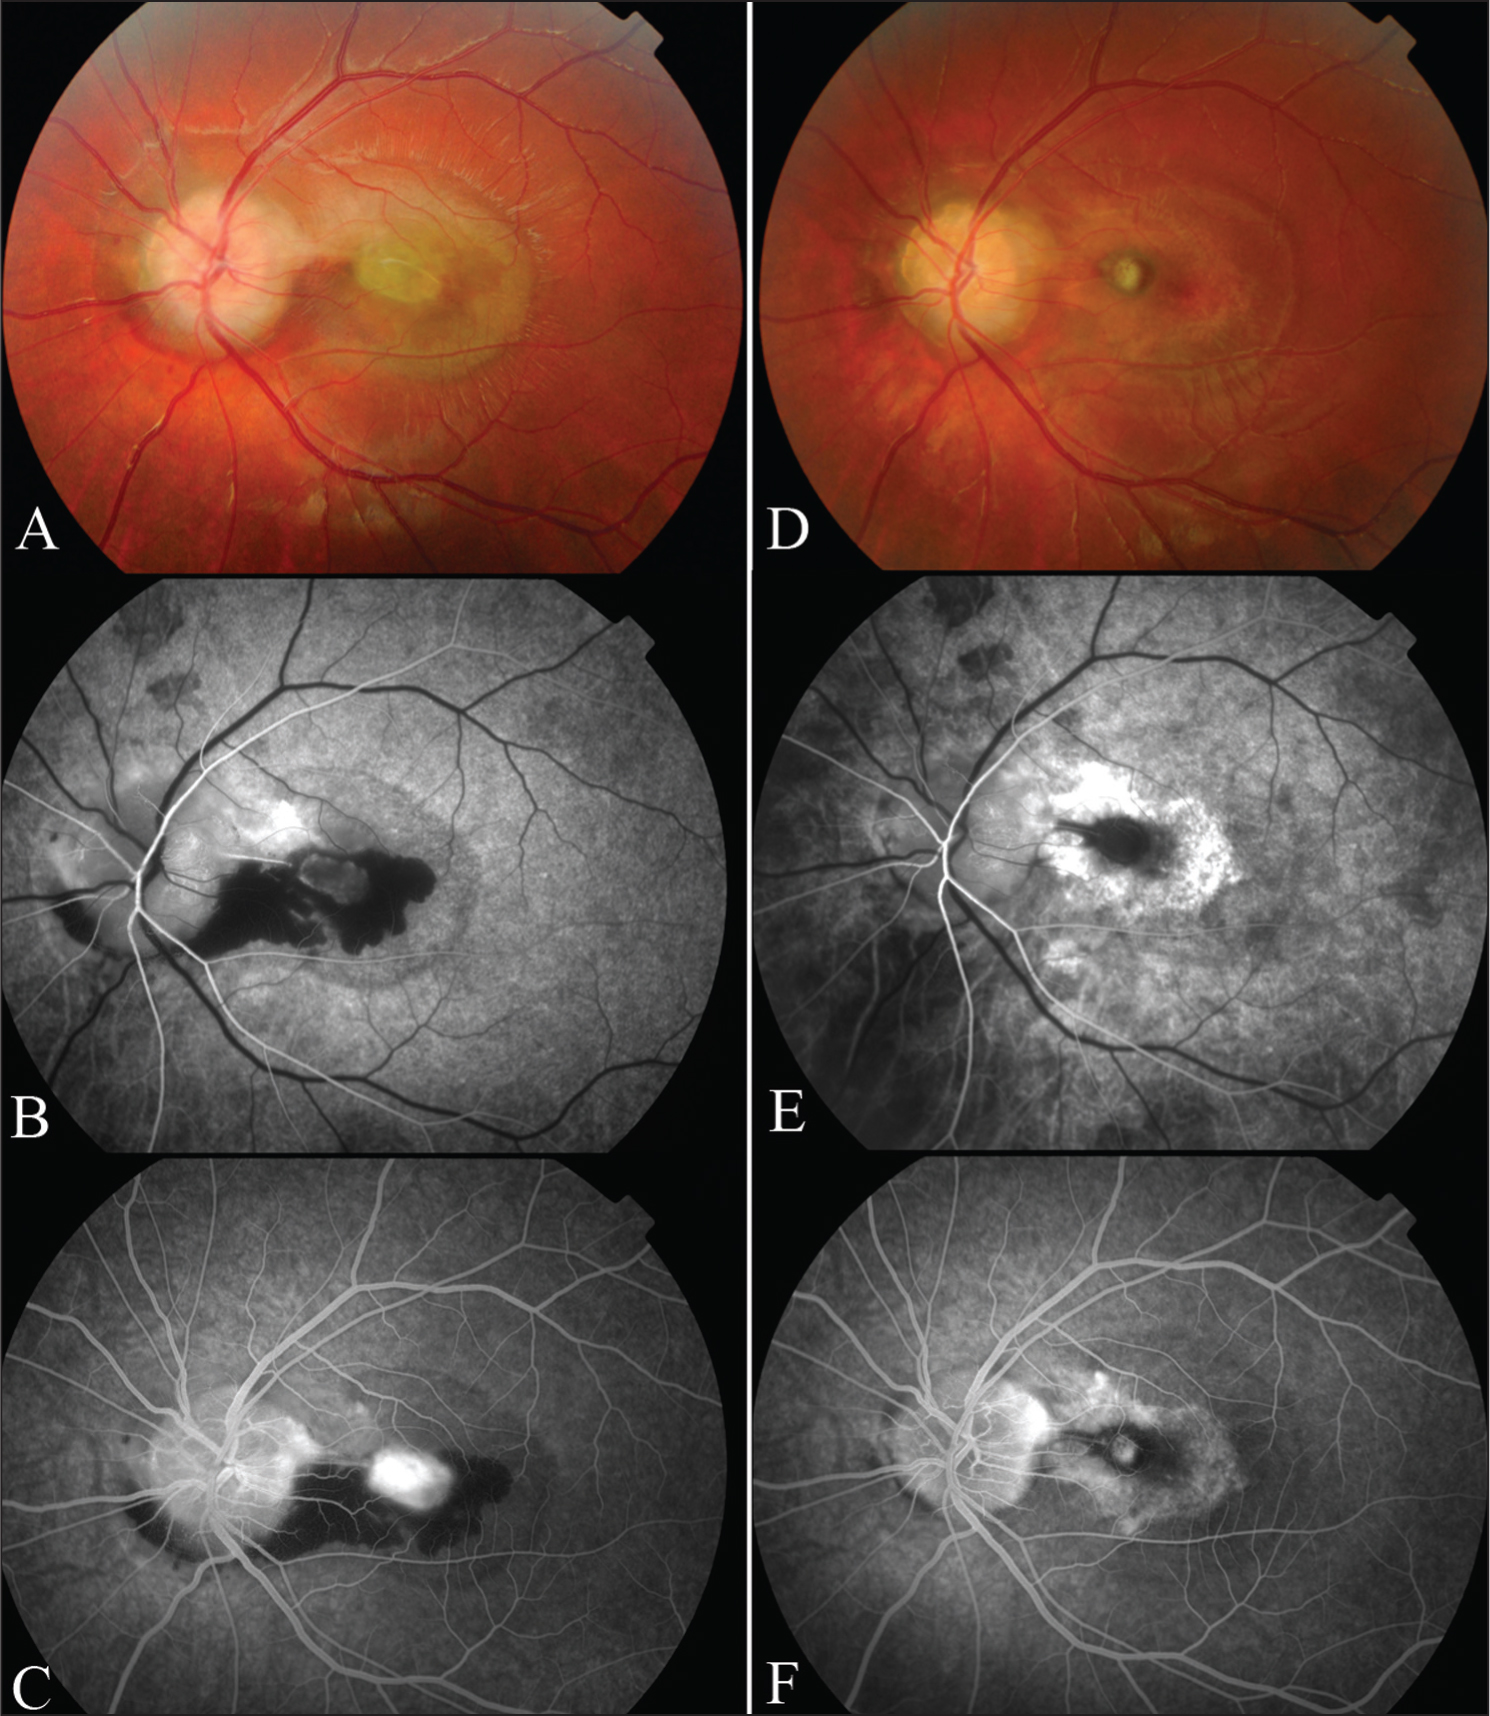 Color Fundus and Fluorescein Angiogram Images from the Left Eye at Presentation (A, B, C) and After 3 Months of Treatment (D, E, F). B and E = Early Fluorescein Angiogram Images; D and F = Late Fluorescein Angiograms. Images Show Marked Improvement in Clinical Appearance and Less Leakage at 3 Months. An Area of Retinal Pigment Epithelial Atrophy Has Appeared Around the Lesion.